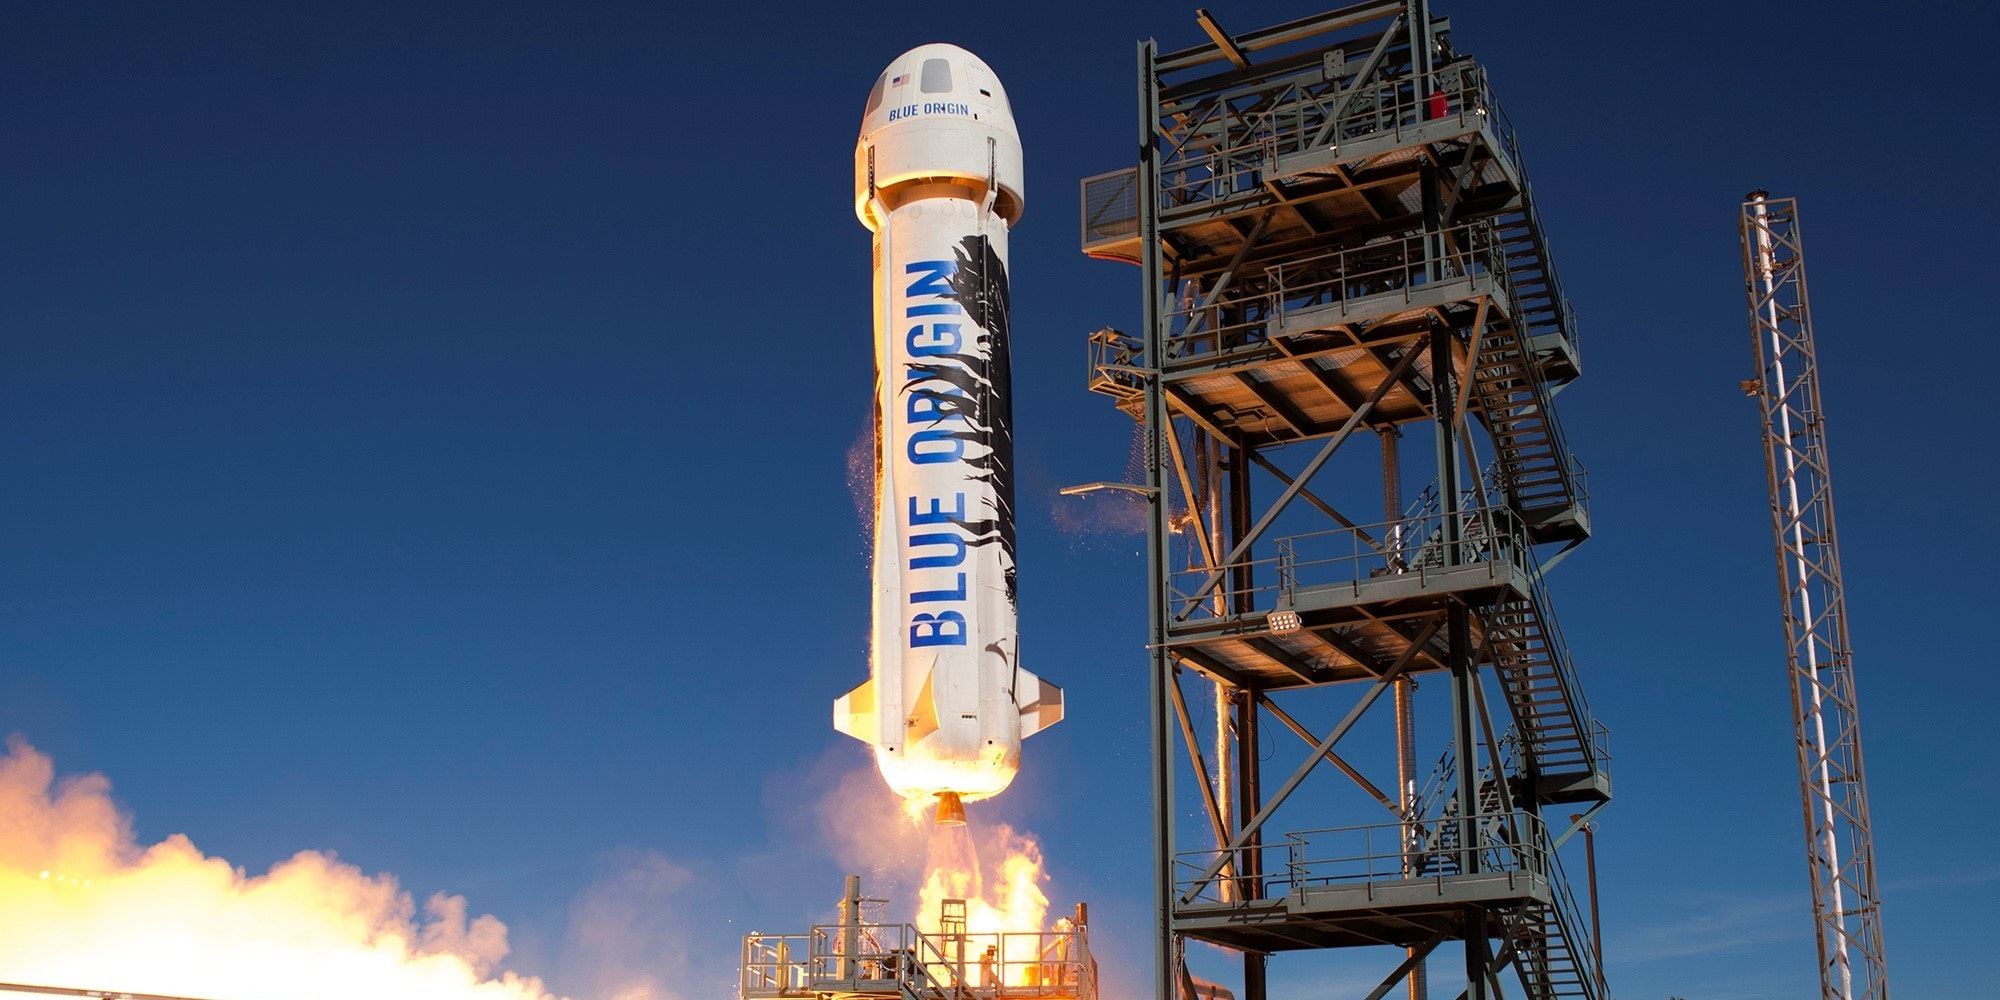 Jeff Bezos' Blue Origin Might Start Sending Tourists to Space in 2018